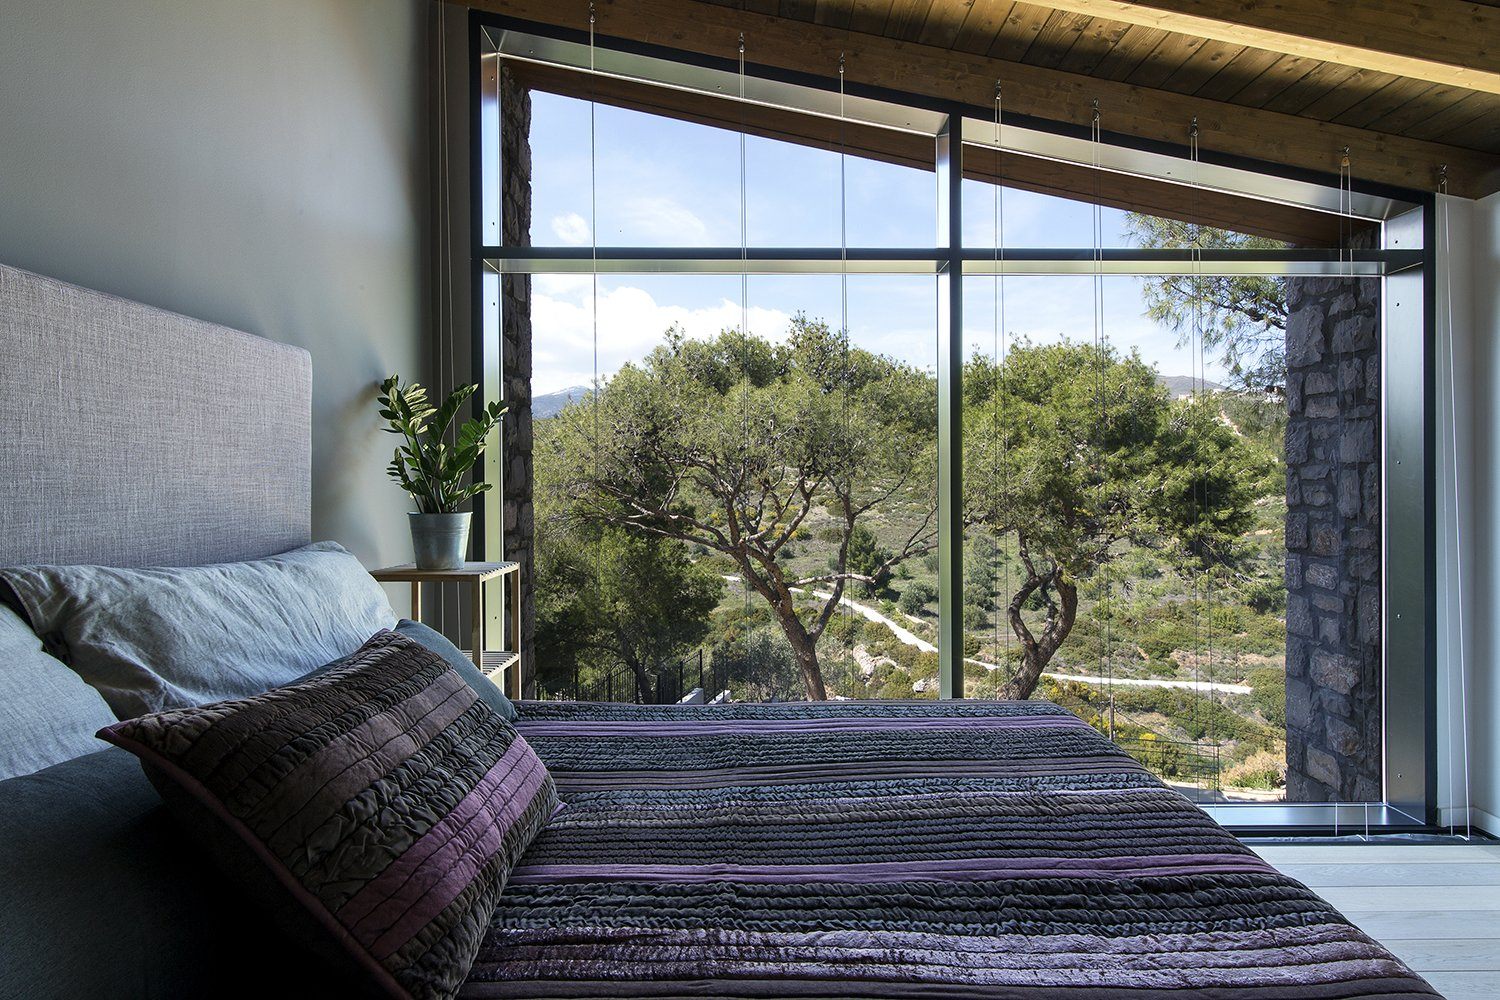 Bedroom The facade opens up to the view of the pines trees concealing the boundary between the interior of the house and its surrounding environment   The Wedge House